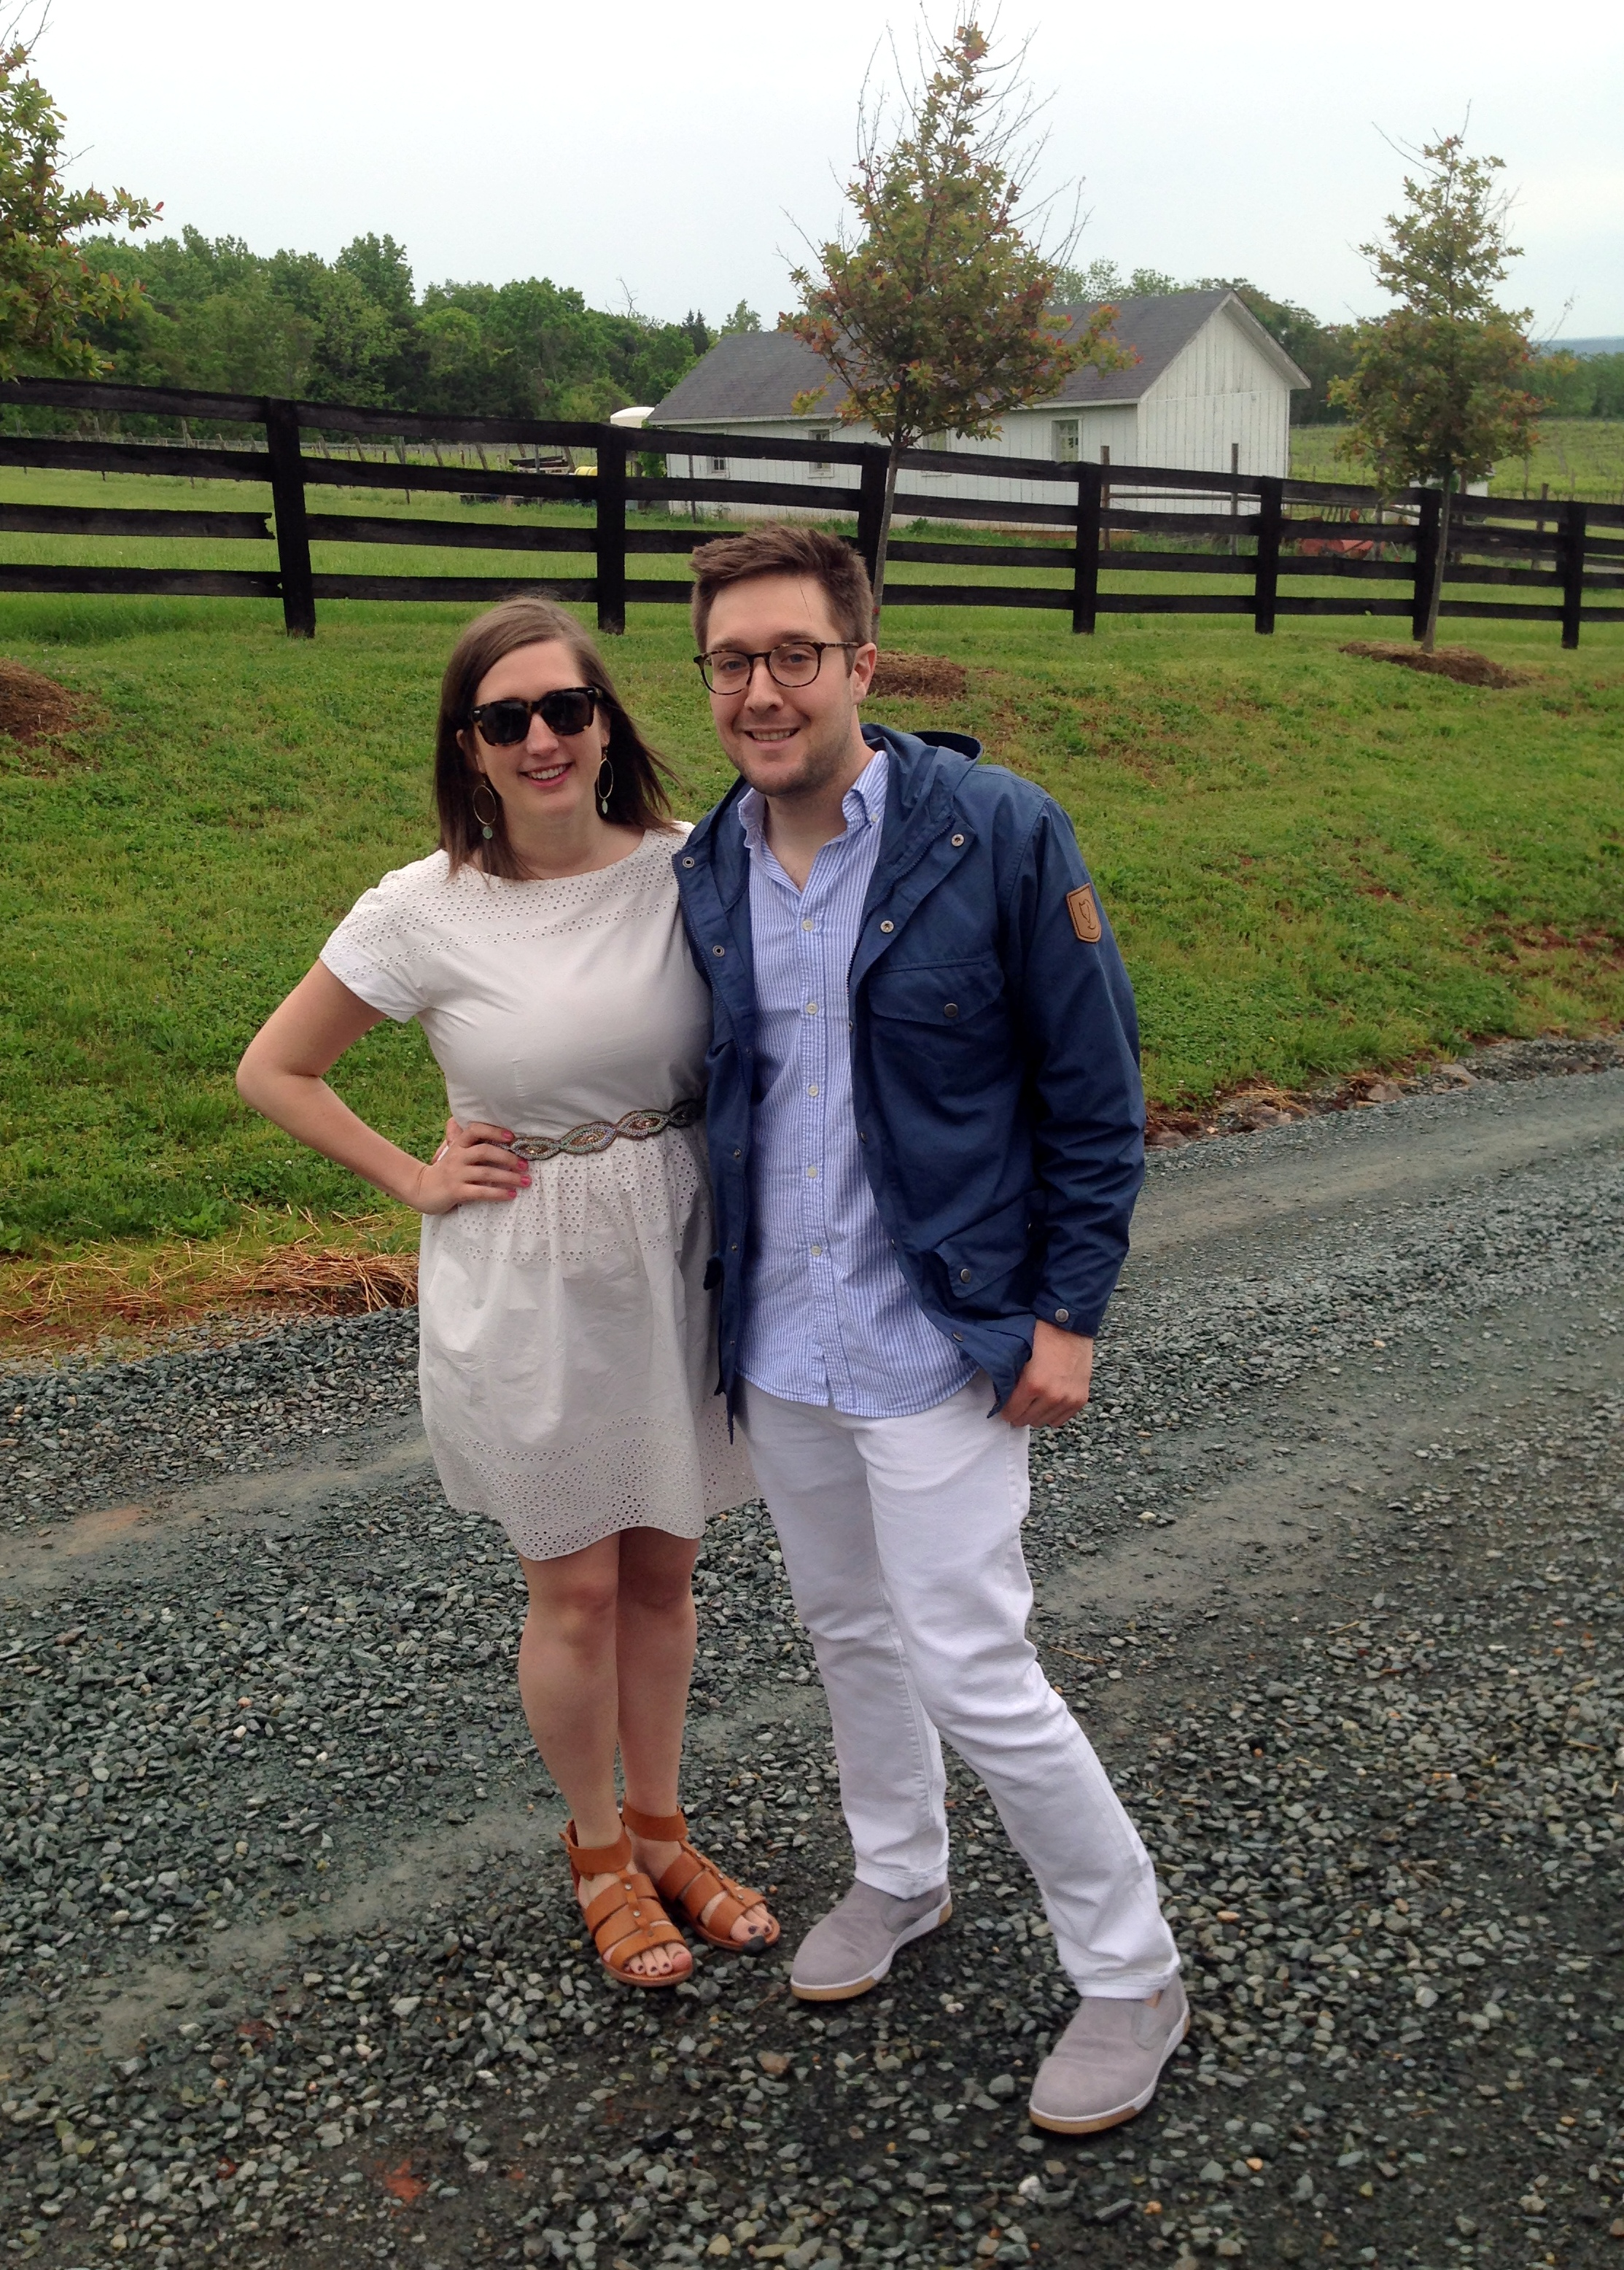 charlottesville wine couples weekend